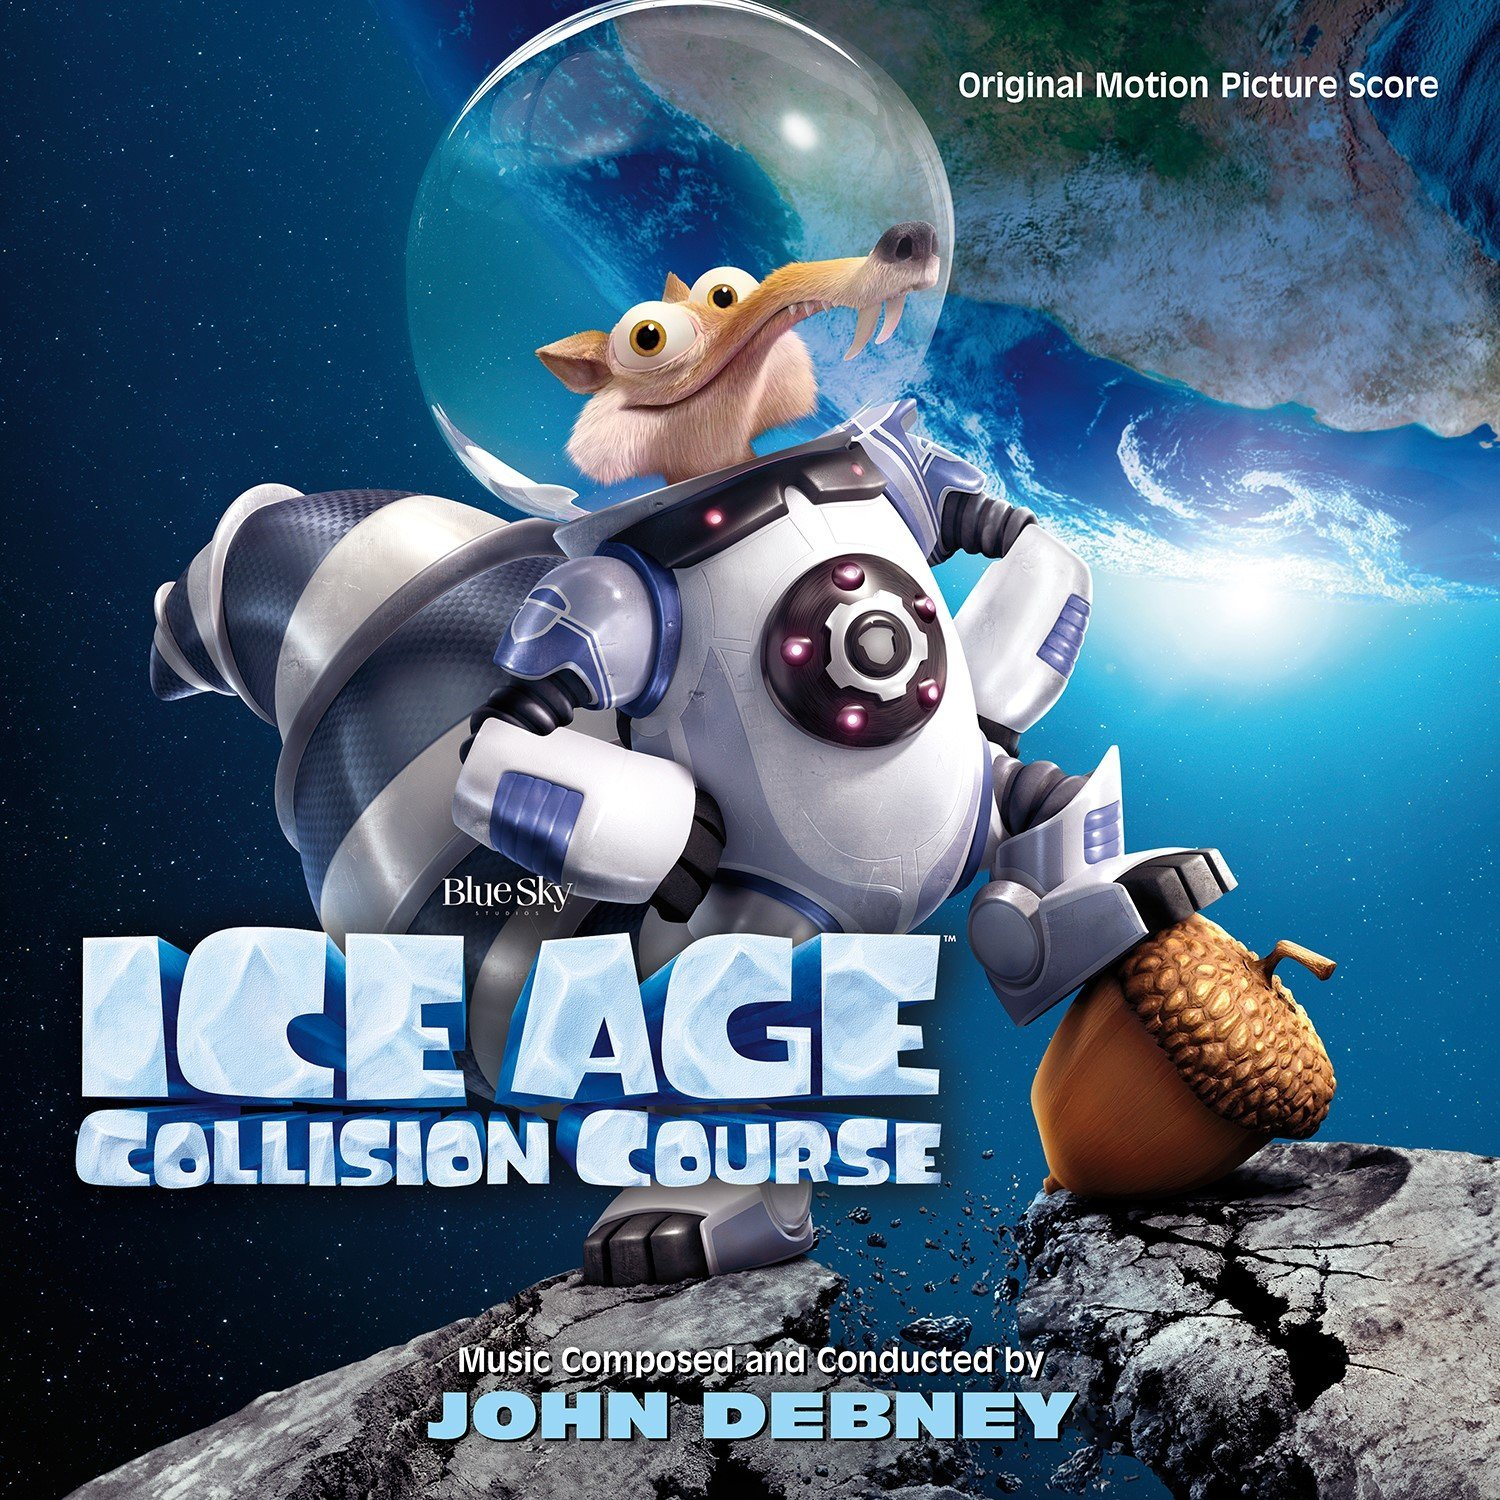 ice age 5 movie song